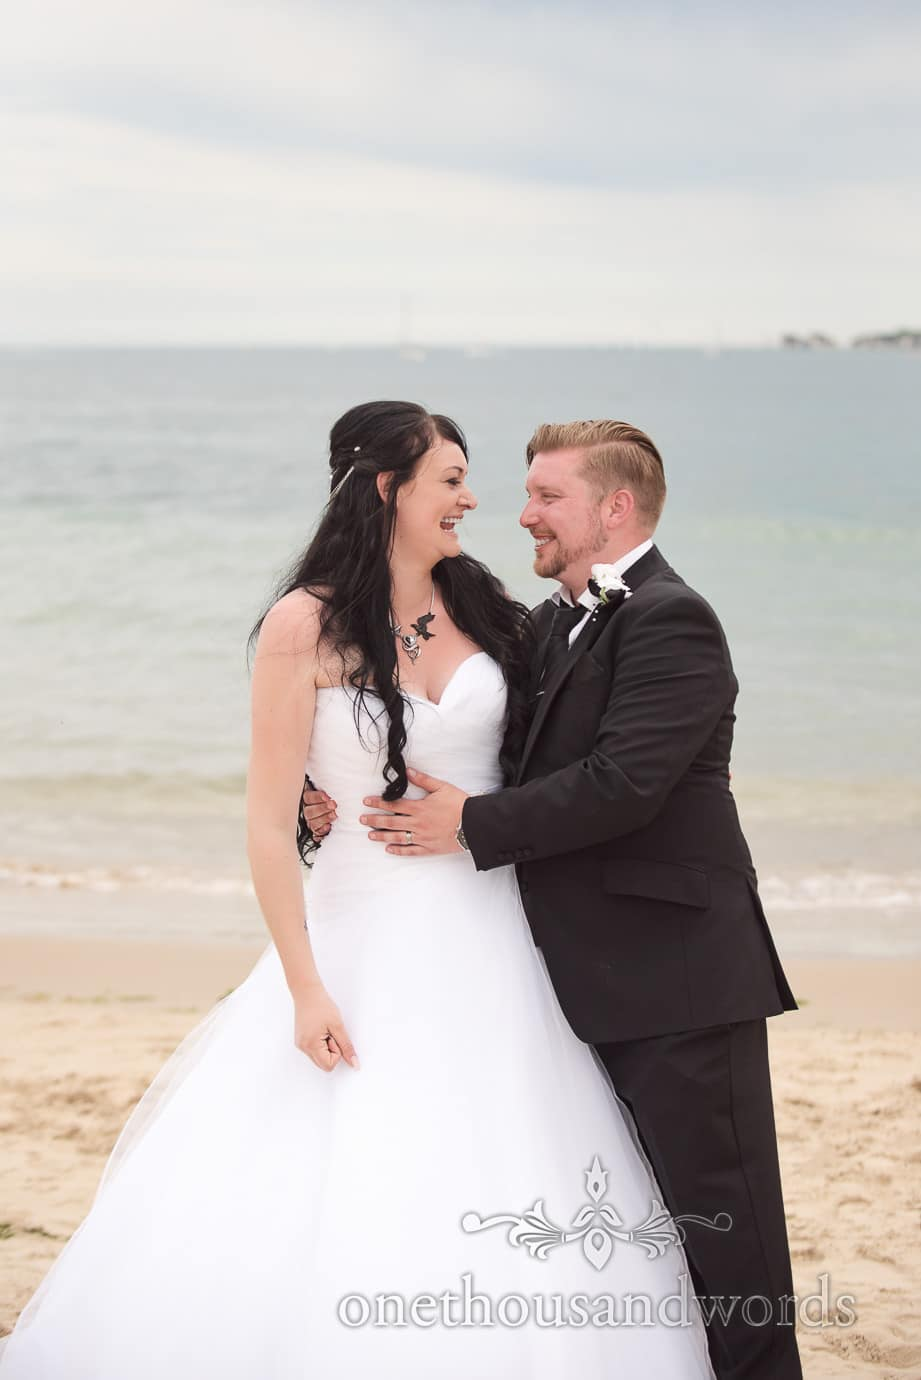 Black and white themed wedding bride and groom on the beach with the Dorset sea